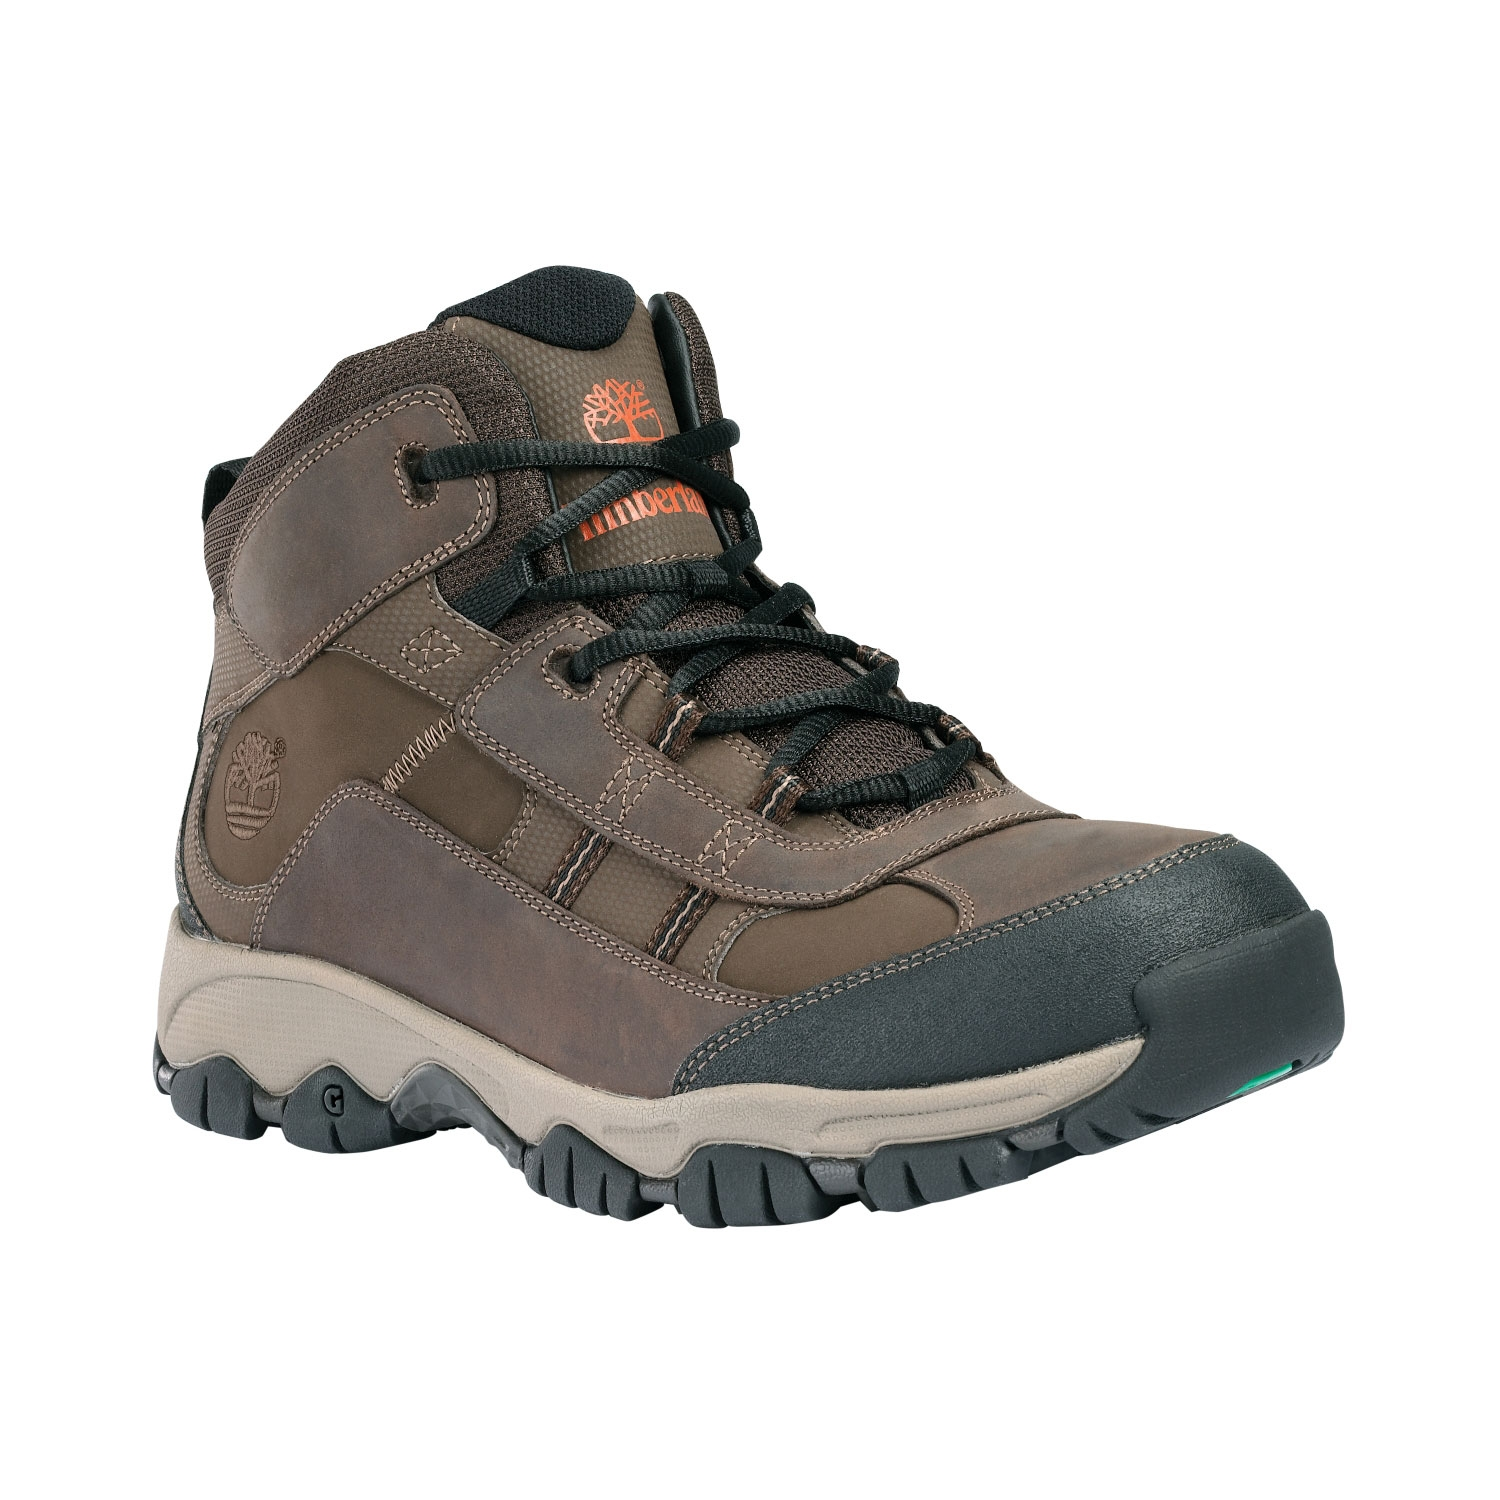 Image of Timberland Edge Trail GTX Walking Boots (Women s) - Dark Brown Tan b94cb8d47